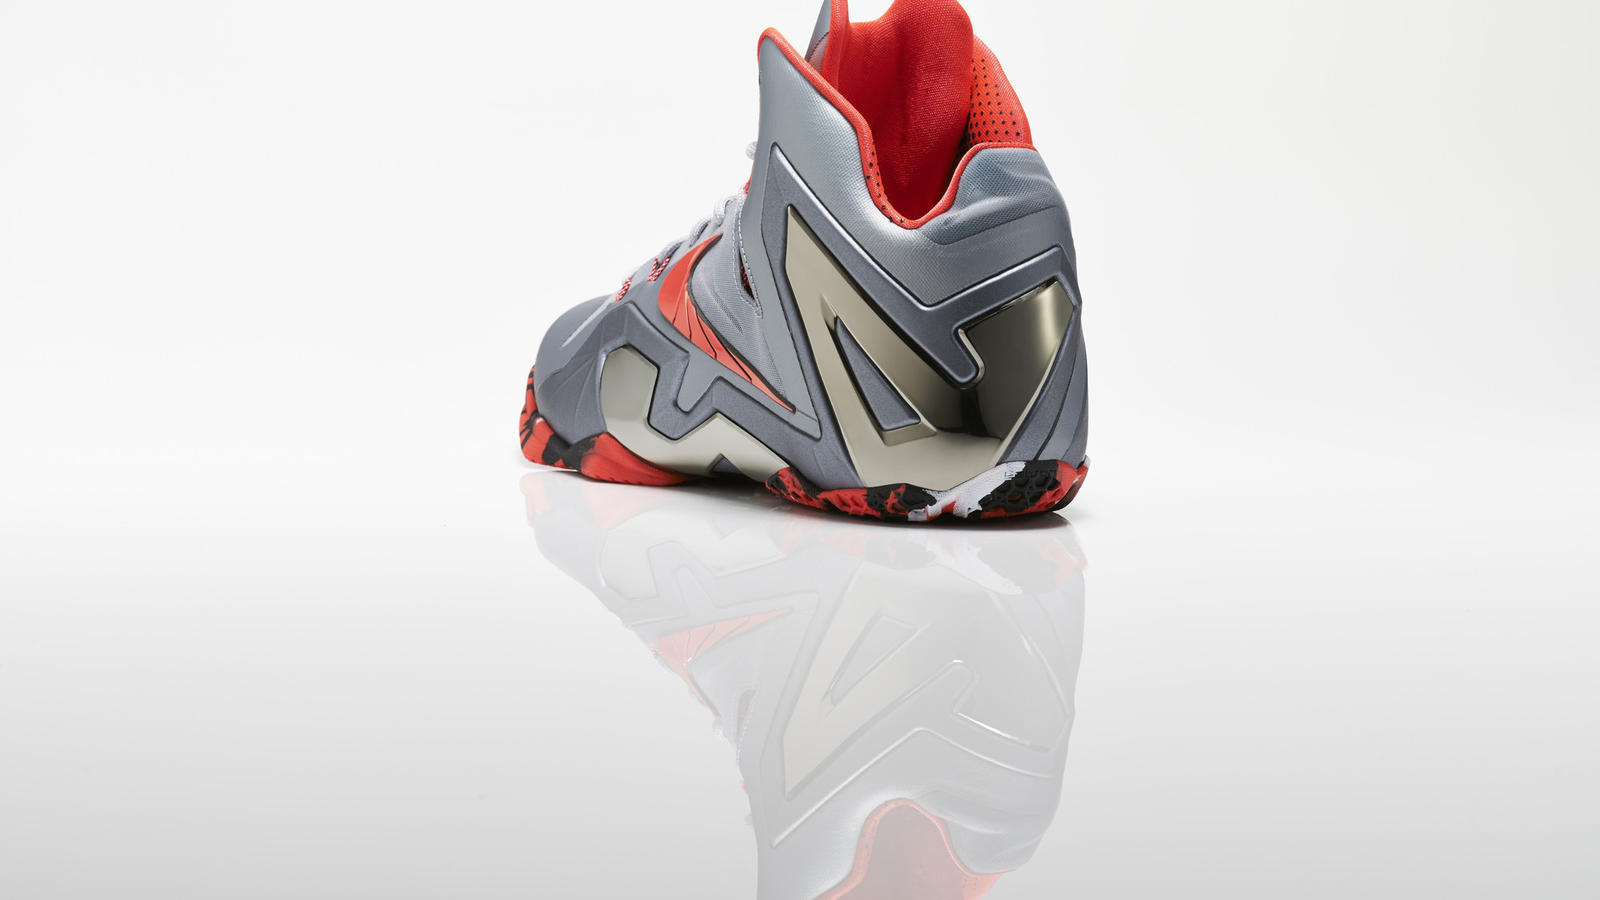 su14_bb_lebron11_elite_642846_001_return_3qtr_back_low_0207